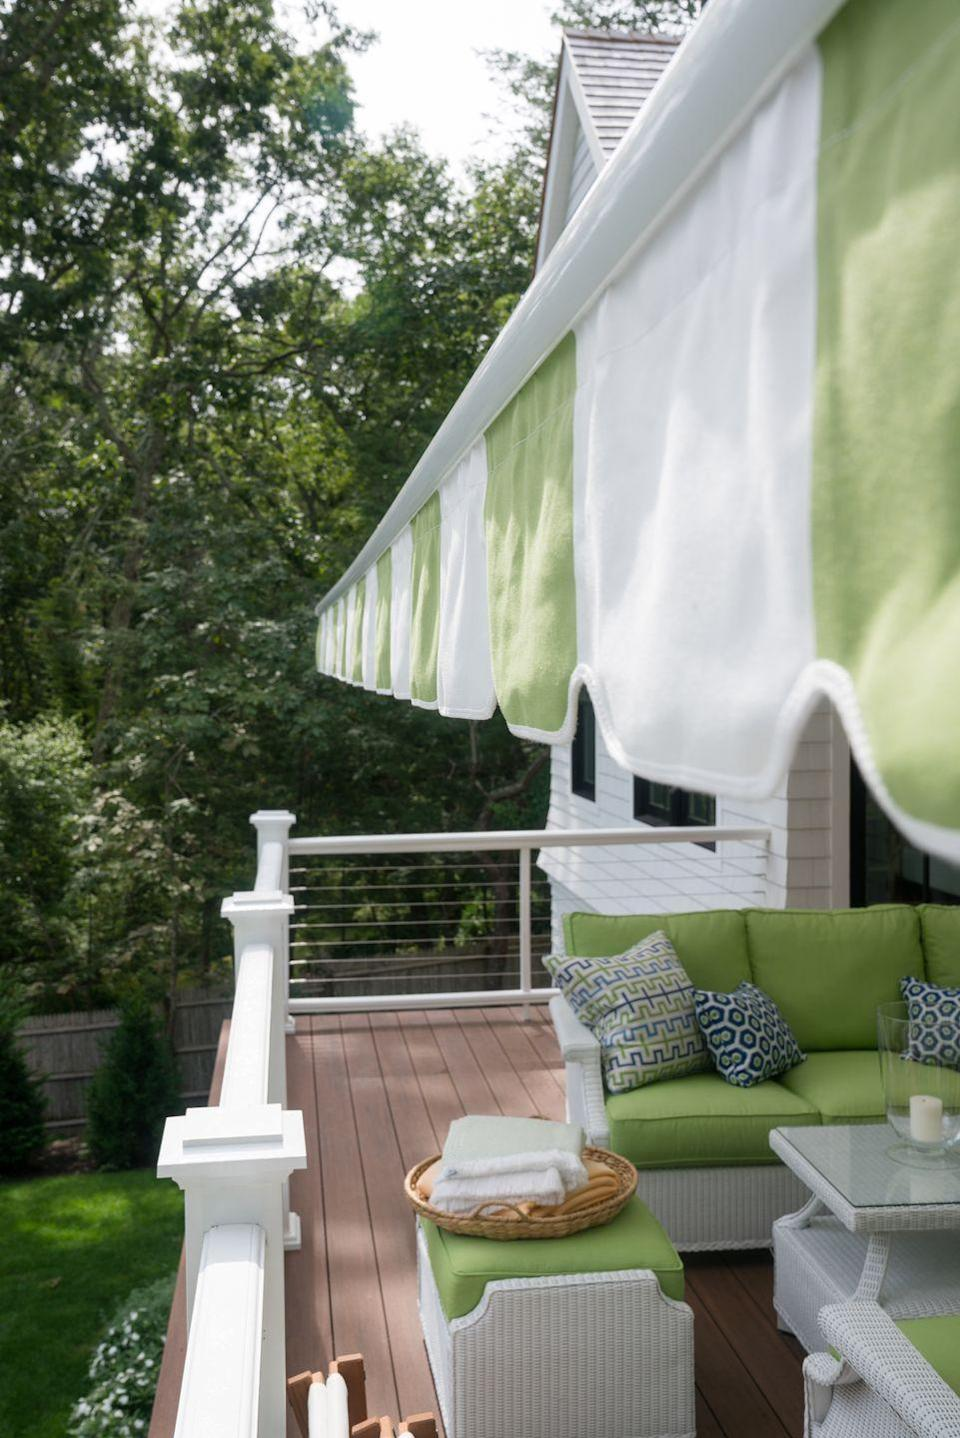 """<p>""""For a finished option, auto-tilt umbrellas are nice because they allow you to adjust the canopy throughout the day,"""" Voorhis says. """"At the same time, a retractable awning can give you a more consistently shaded outdoor office.""""</p>"""